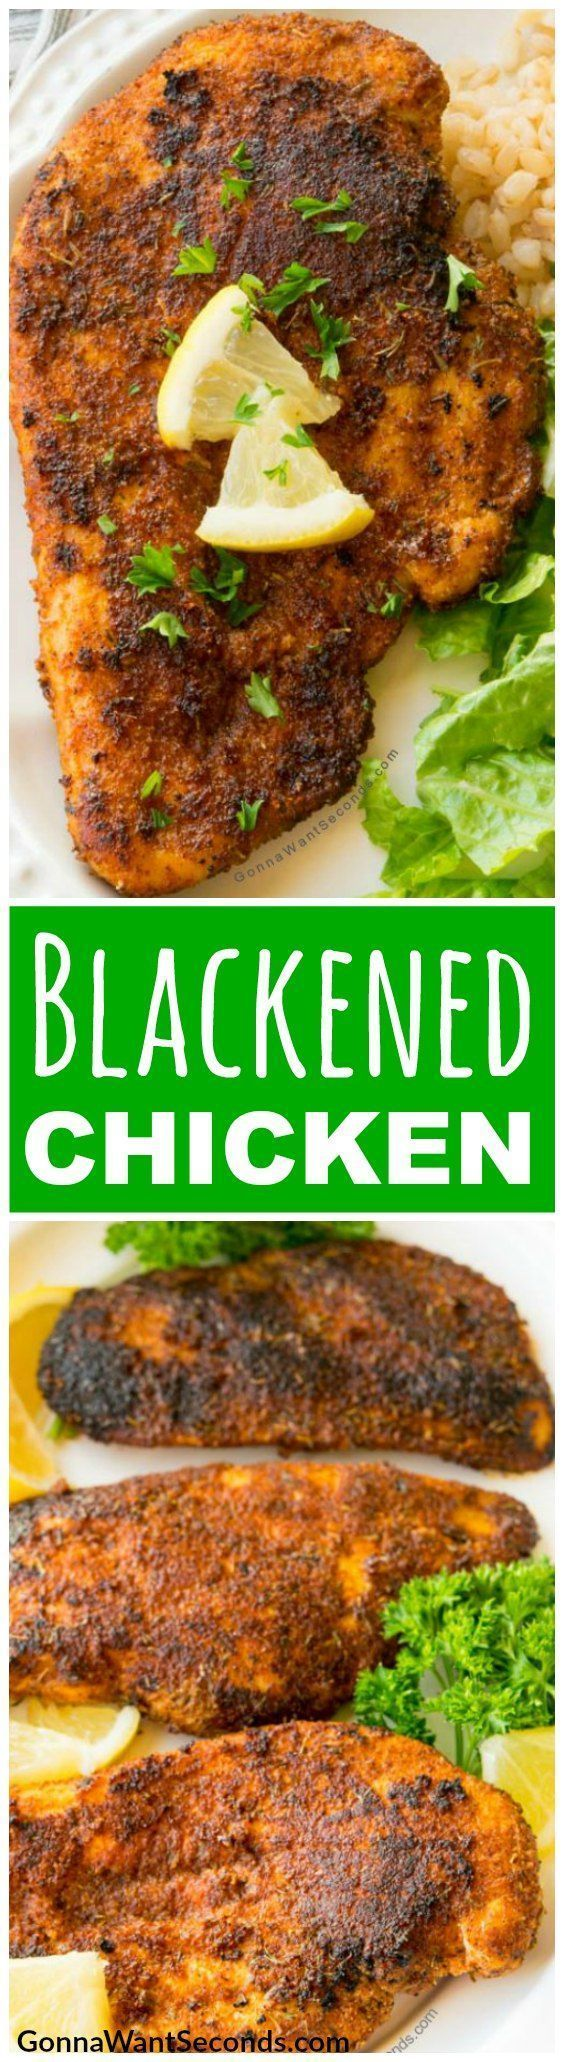 Our easy Blackened Chicken Recipe is inspired by Paul Prudhomme, generously coated with a fiery spice rub, then sauted to perfection in a traditional cast iron skillet. This cajun delight can be made start to finish in 15 minutes and makes a dinner thats delicious taste belies its ease of preparation! #Blackened #Chicken #ChickenBreast #Recipe #Seasoning #Skillet #Easy #HowToMake #Cajun #Dinner #CastIron #HowToCook #AndRice #Meals #Rub #Spice #Cayenne #LeftOver #Pasta